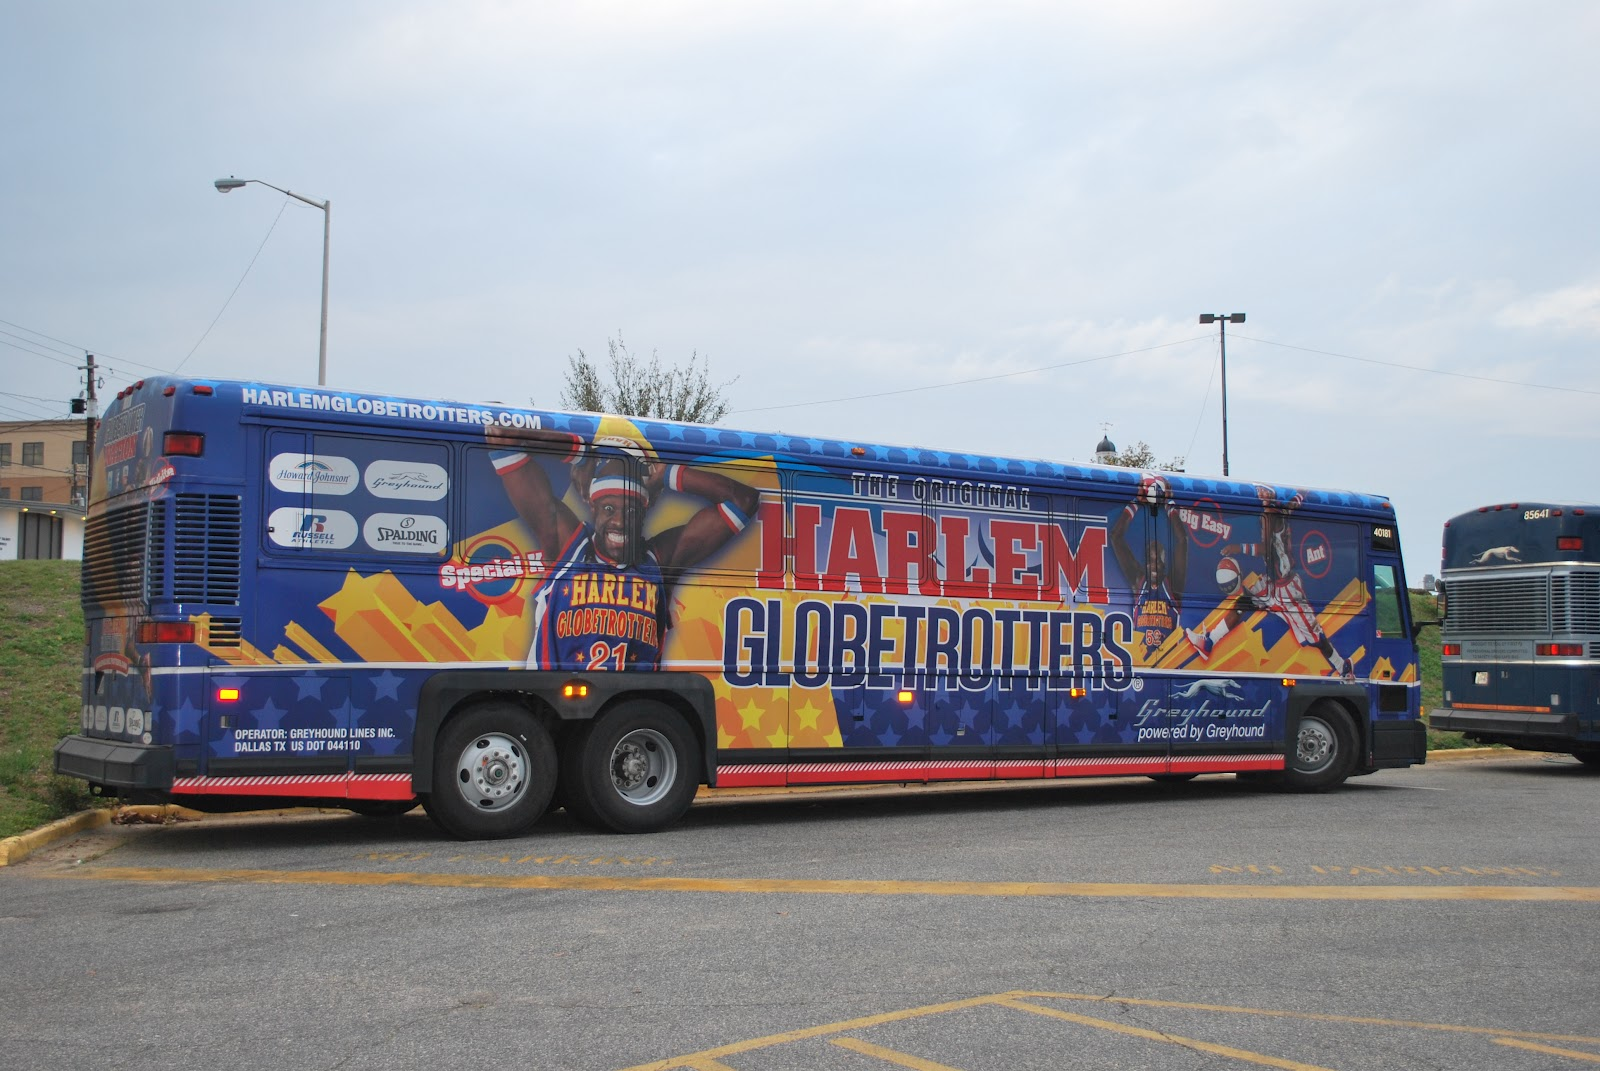 THE Harlem Globetrotters Bus In Albany Georgia